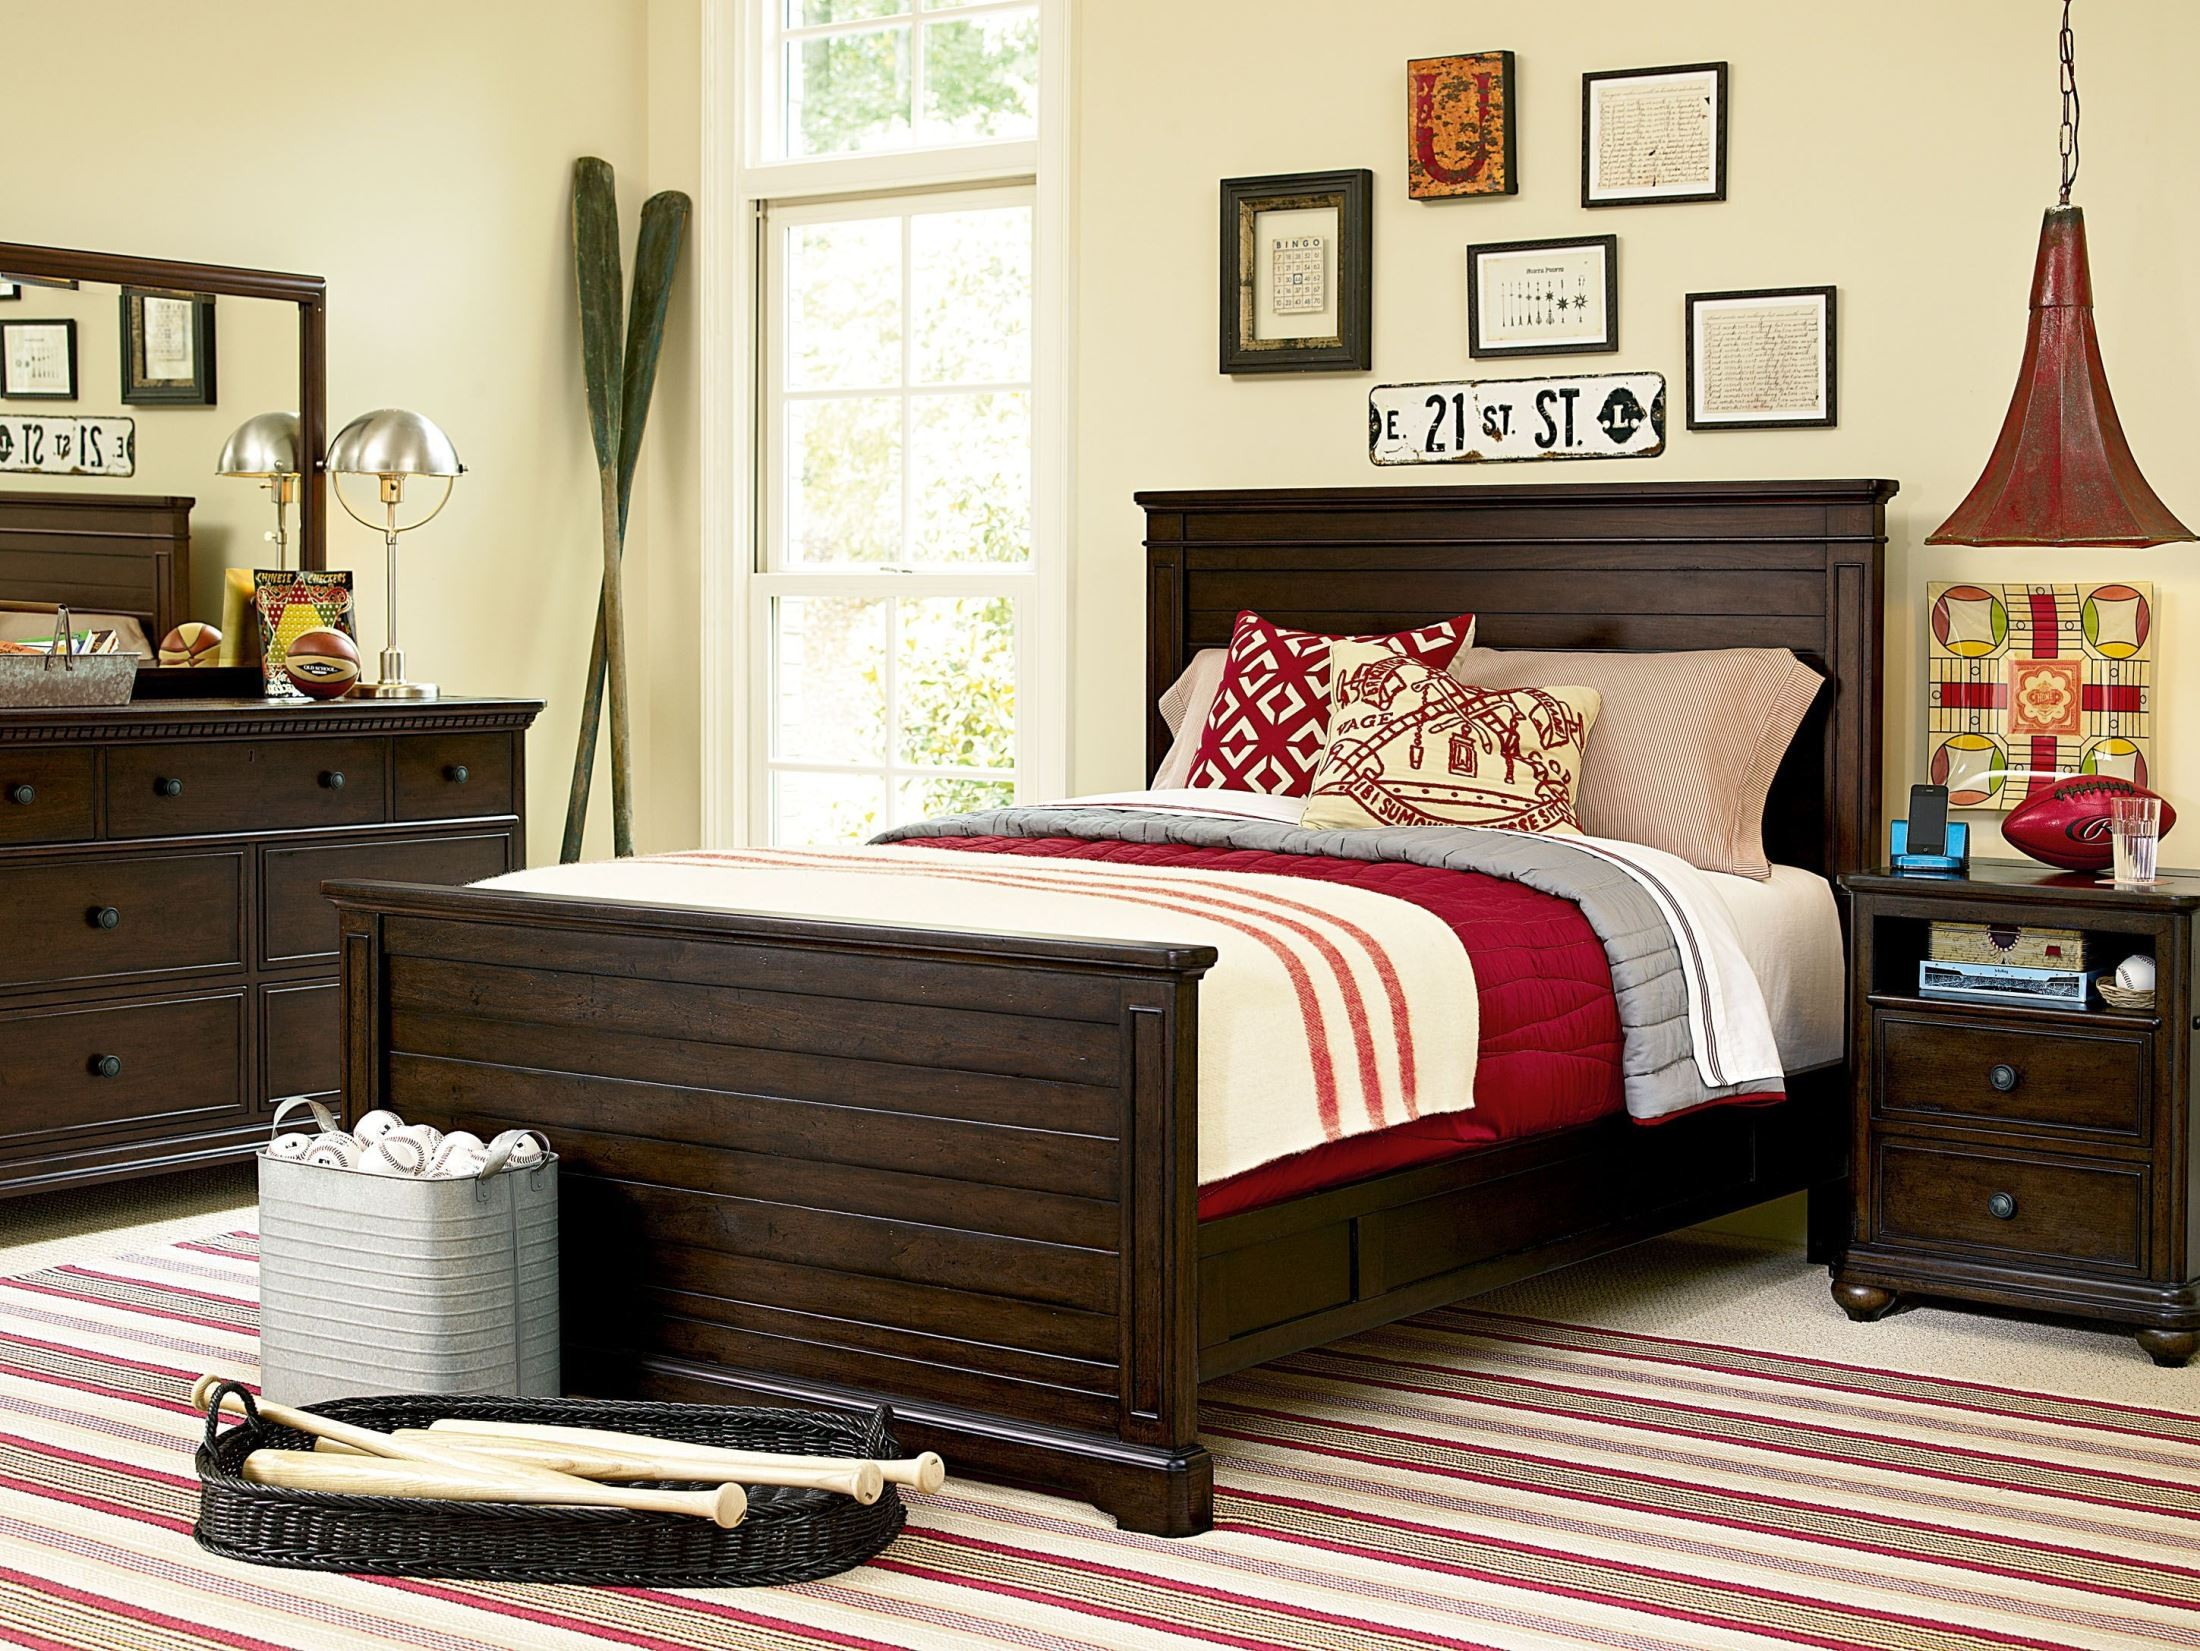 Paula deen guys smartstuff panel bedroom set from smart for Paula deen bedroom furniture